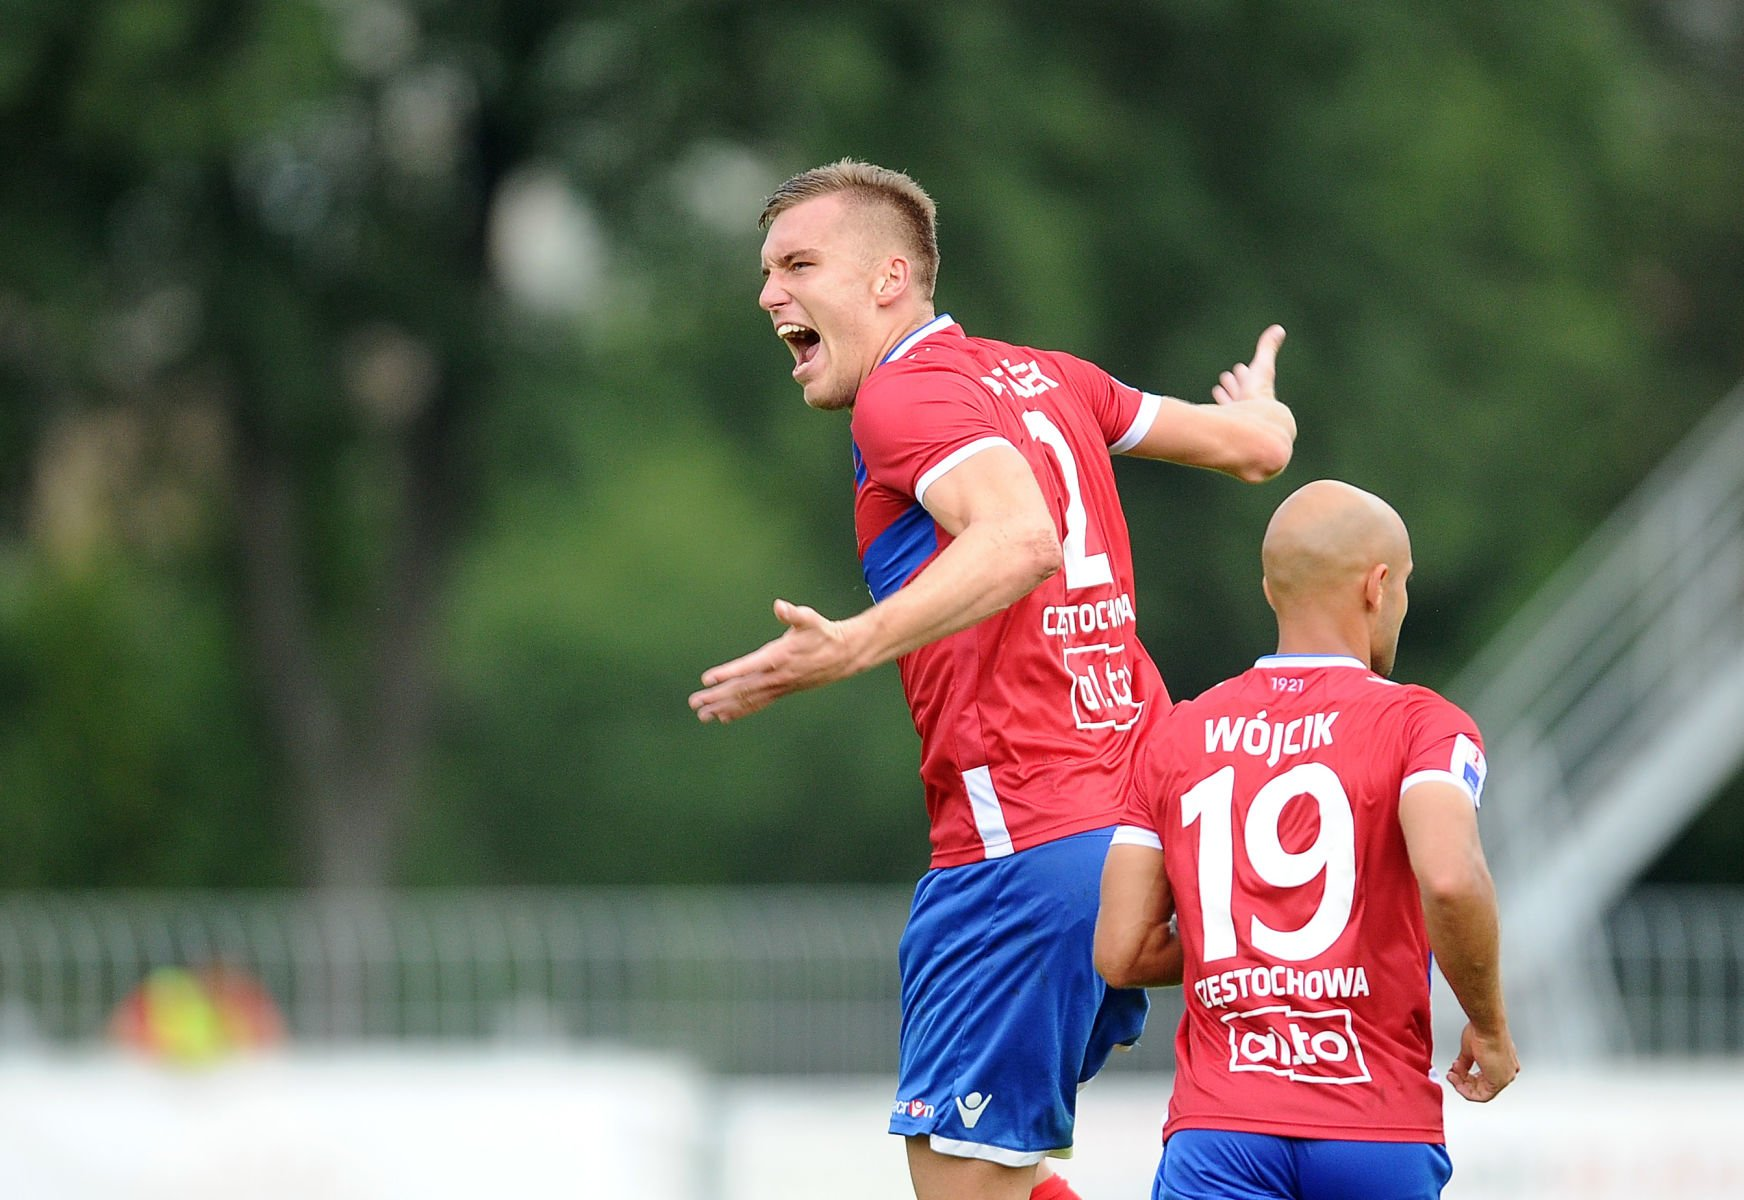 2017.08.26 Czestochowa Pilka nozna Nice 1 Liga sezon 2017/2018 Rakow Czestochowa - Zaglebie Sosnowiec N/z bramka gol radosc 1:2 Tomas Petrasek Foto Lukasz Sobala / PressFocus 2017.08.26 Czestochowa Football Polish Nice First League Season 2017/2018 Rakow Czestochowa - Zaglebie Sosnowiec bramka gol radosc 1:2 Tomas Petrasek Credit: Lukasz Sobala / PressFocus / NEWSPIX.PL --- Newspix.pl *** Local Caption *** www.newspix.pl mail us: info@newspix.pl call us: 0048 022 23 22 222 --- Polish Picture Agency by Ringier Axel Springer Poland